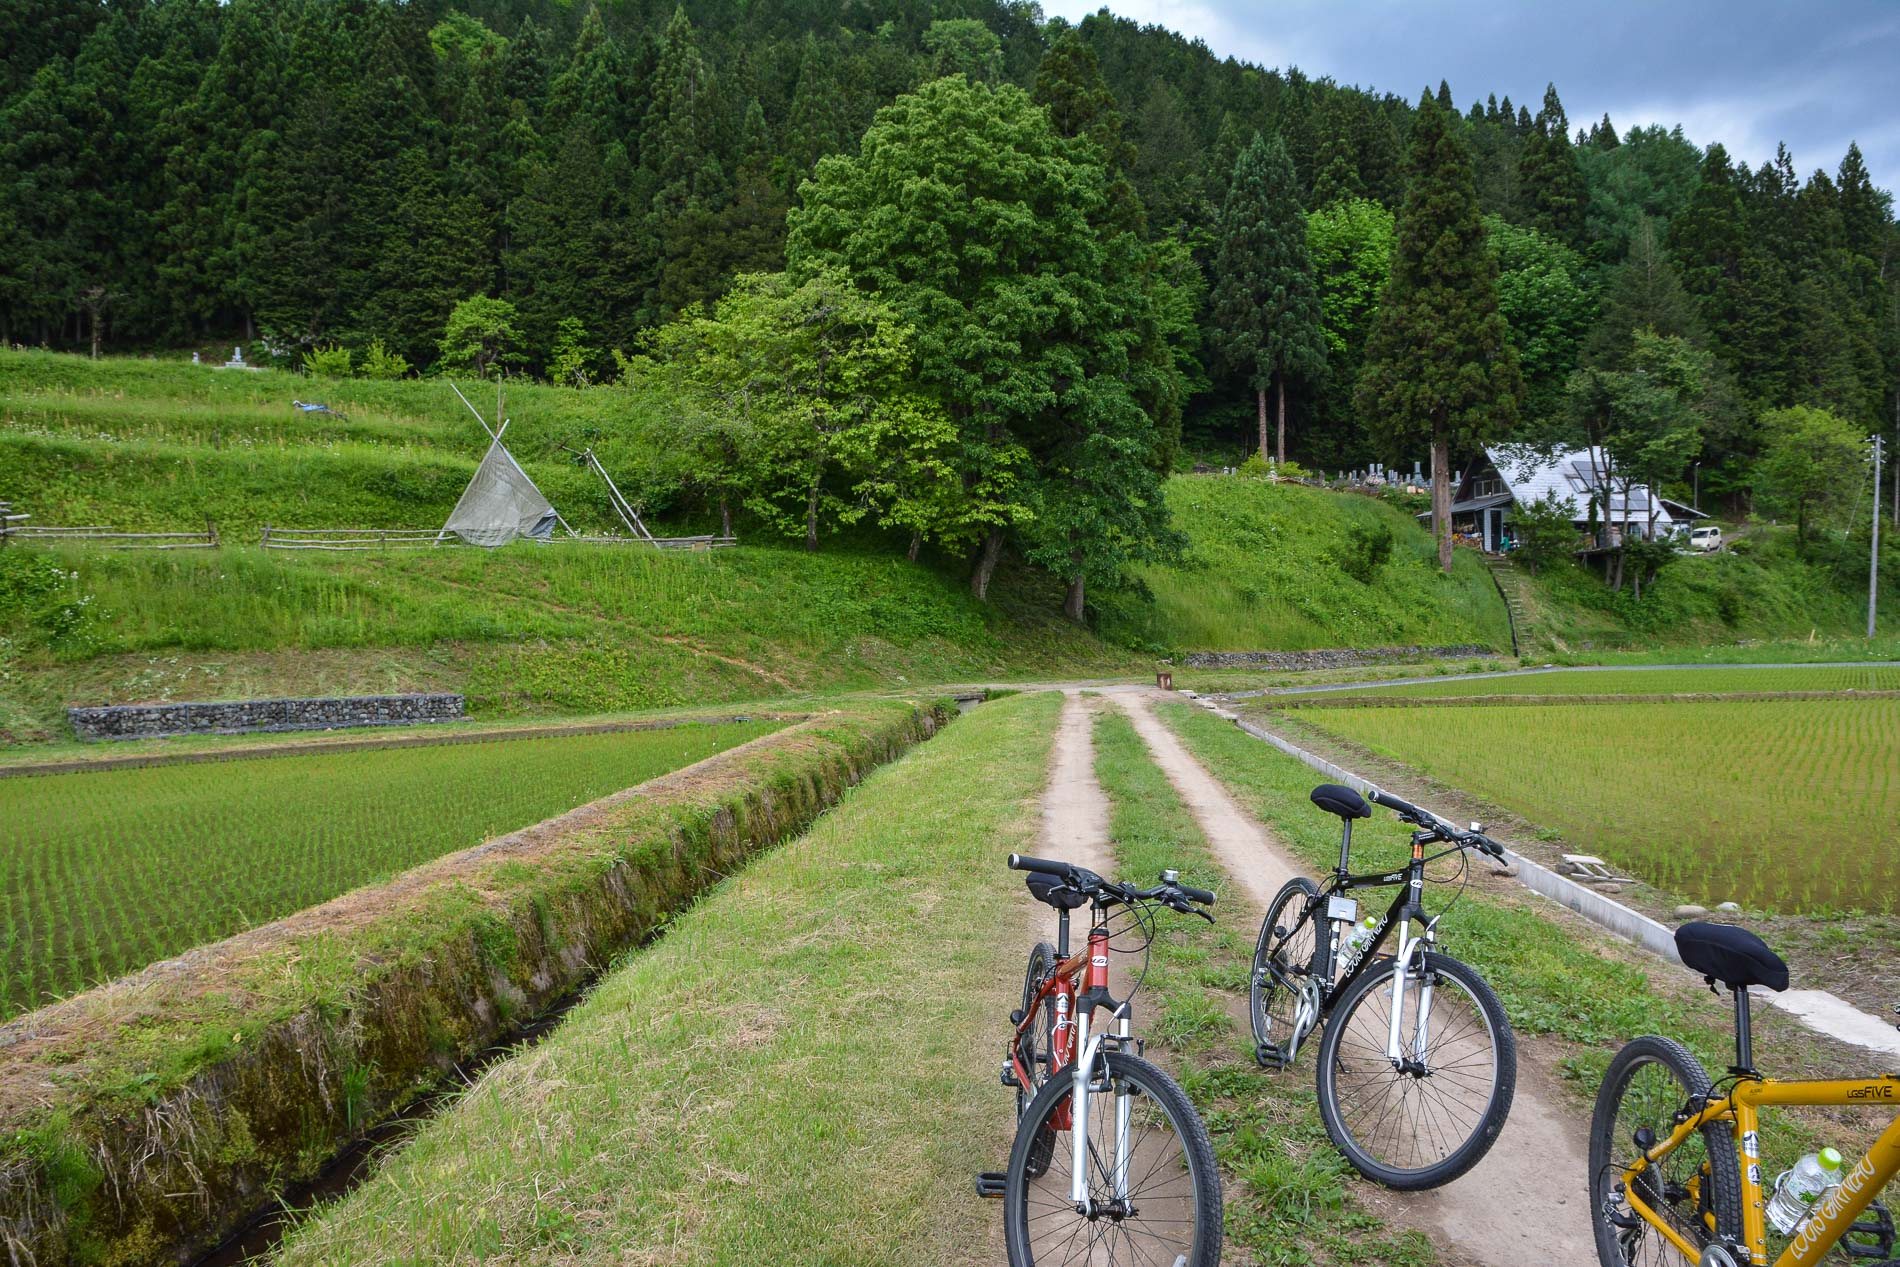 Enjoy cycling tour in rural Japan